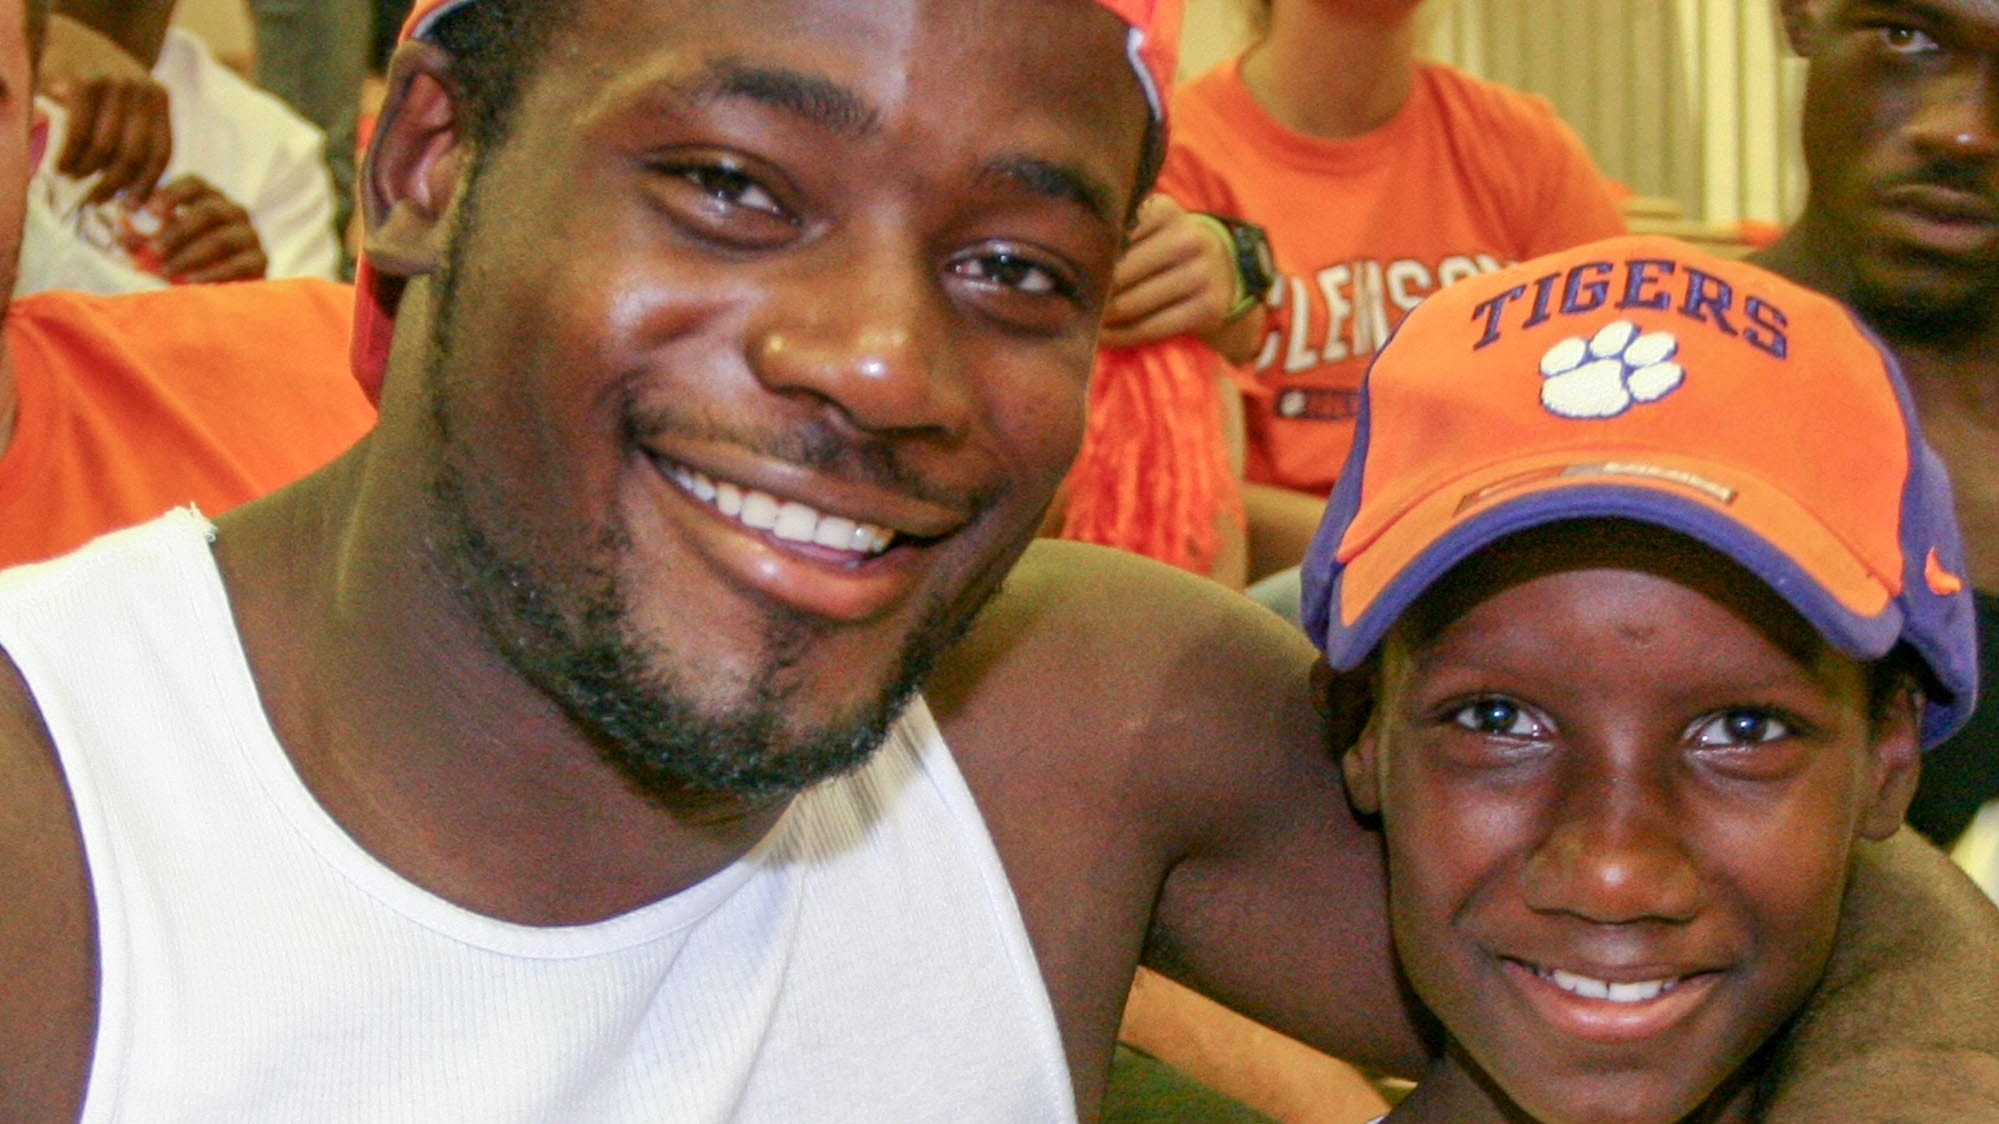 Disney movie about a former Clemson player will film on campus, at Memorial Stadium